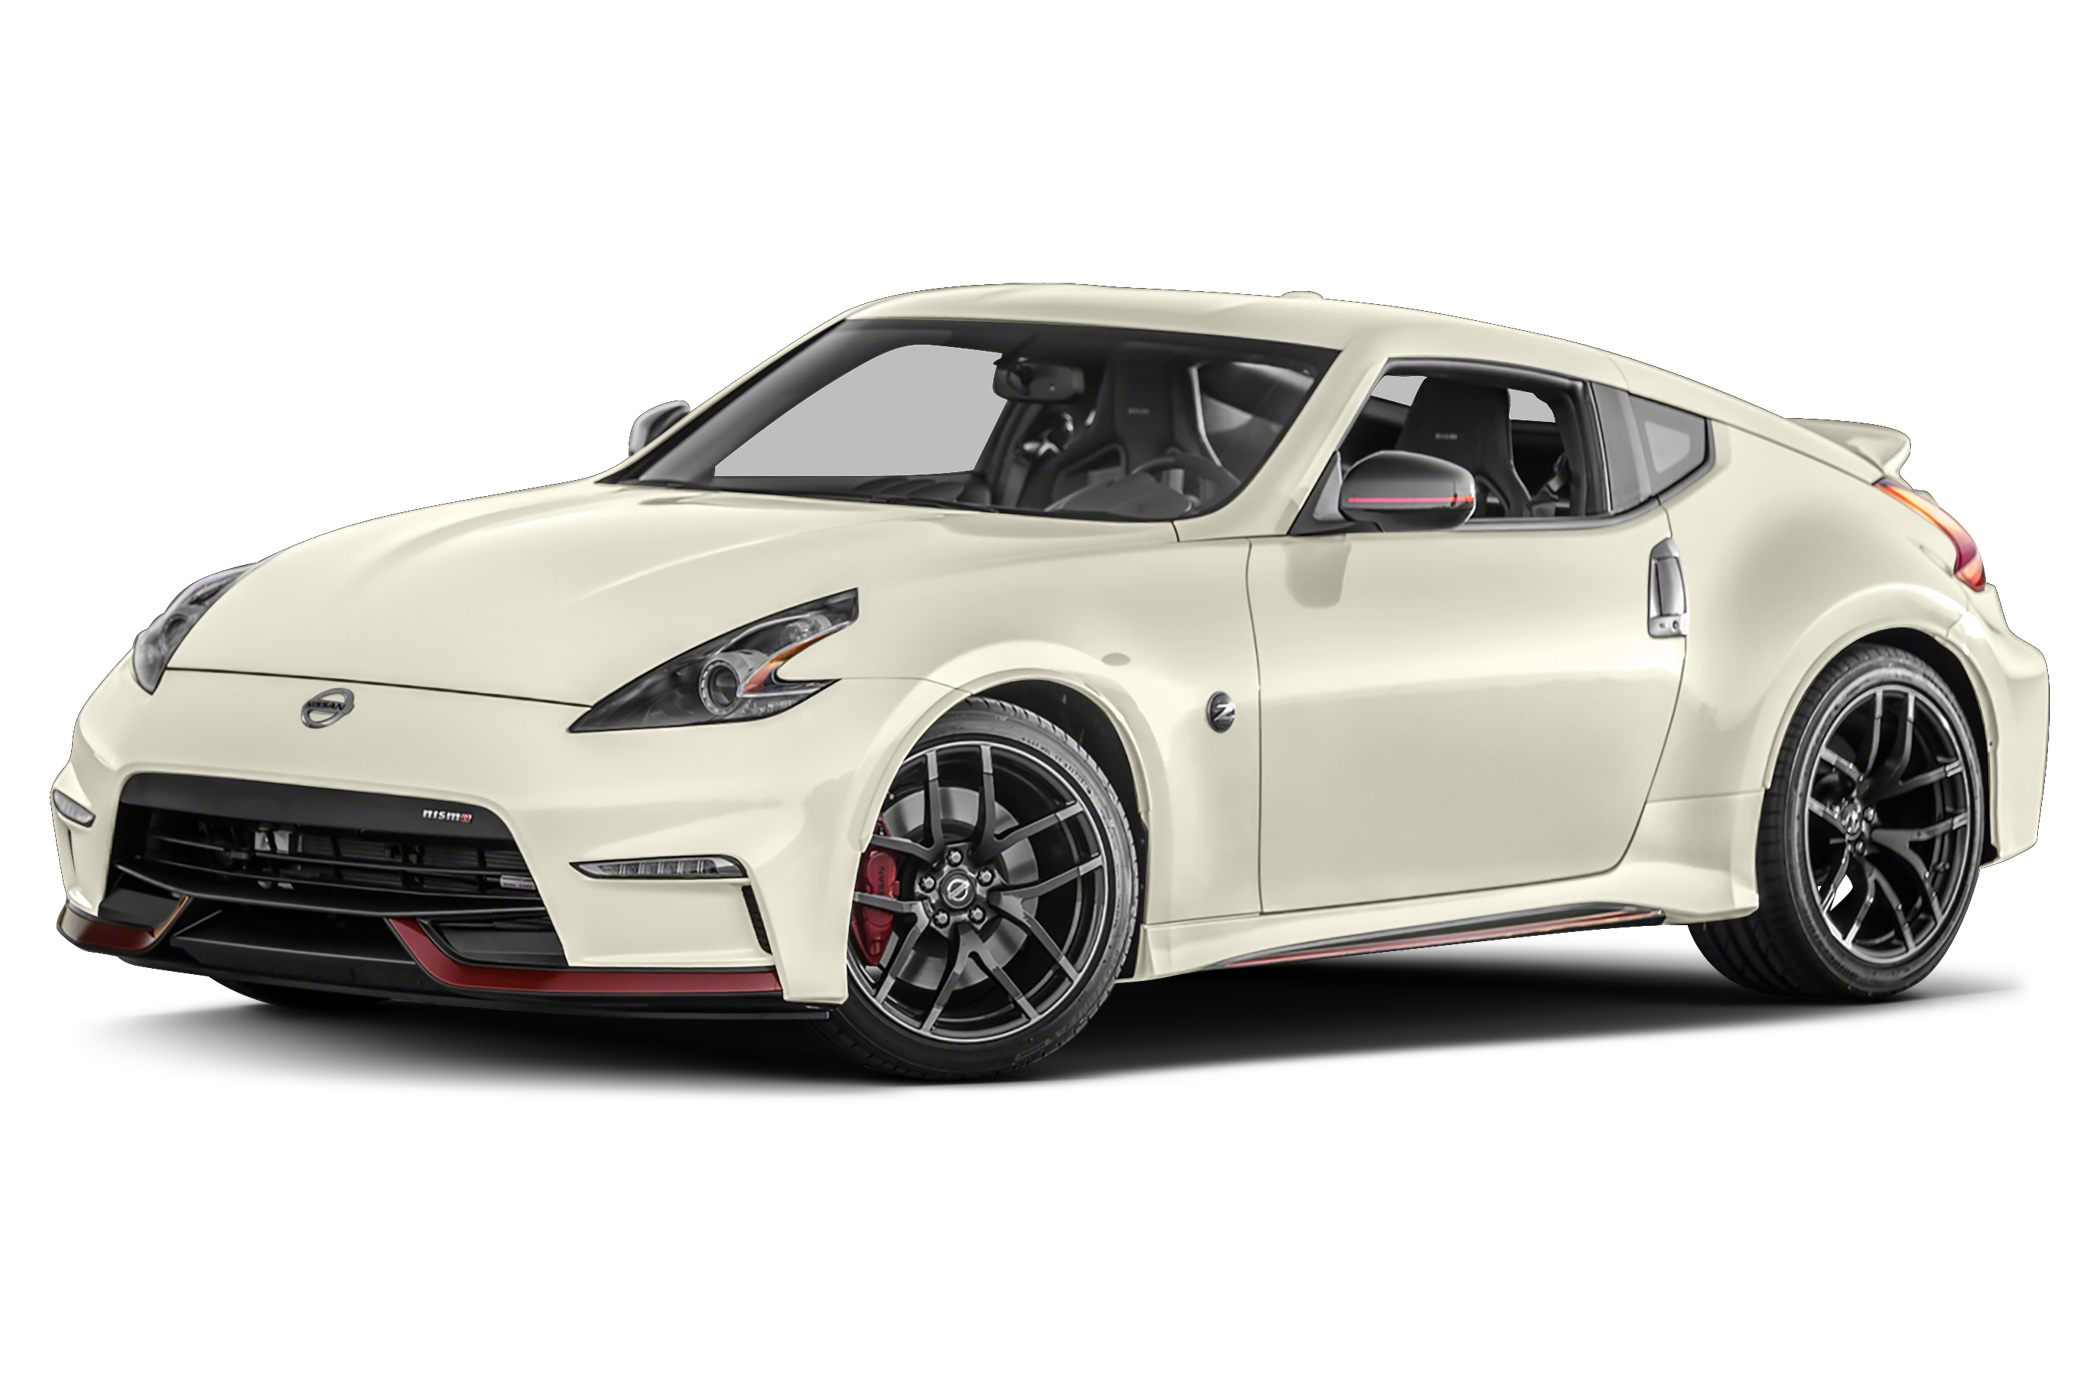 2015 Nissan 370Z NISMO Coupe for sale in Dallas for $43,785 with 6 miles.